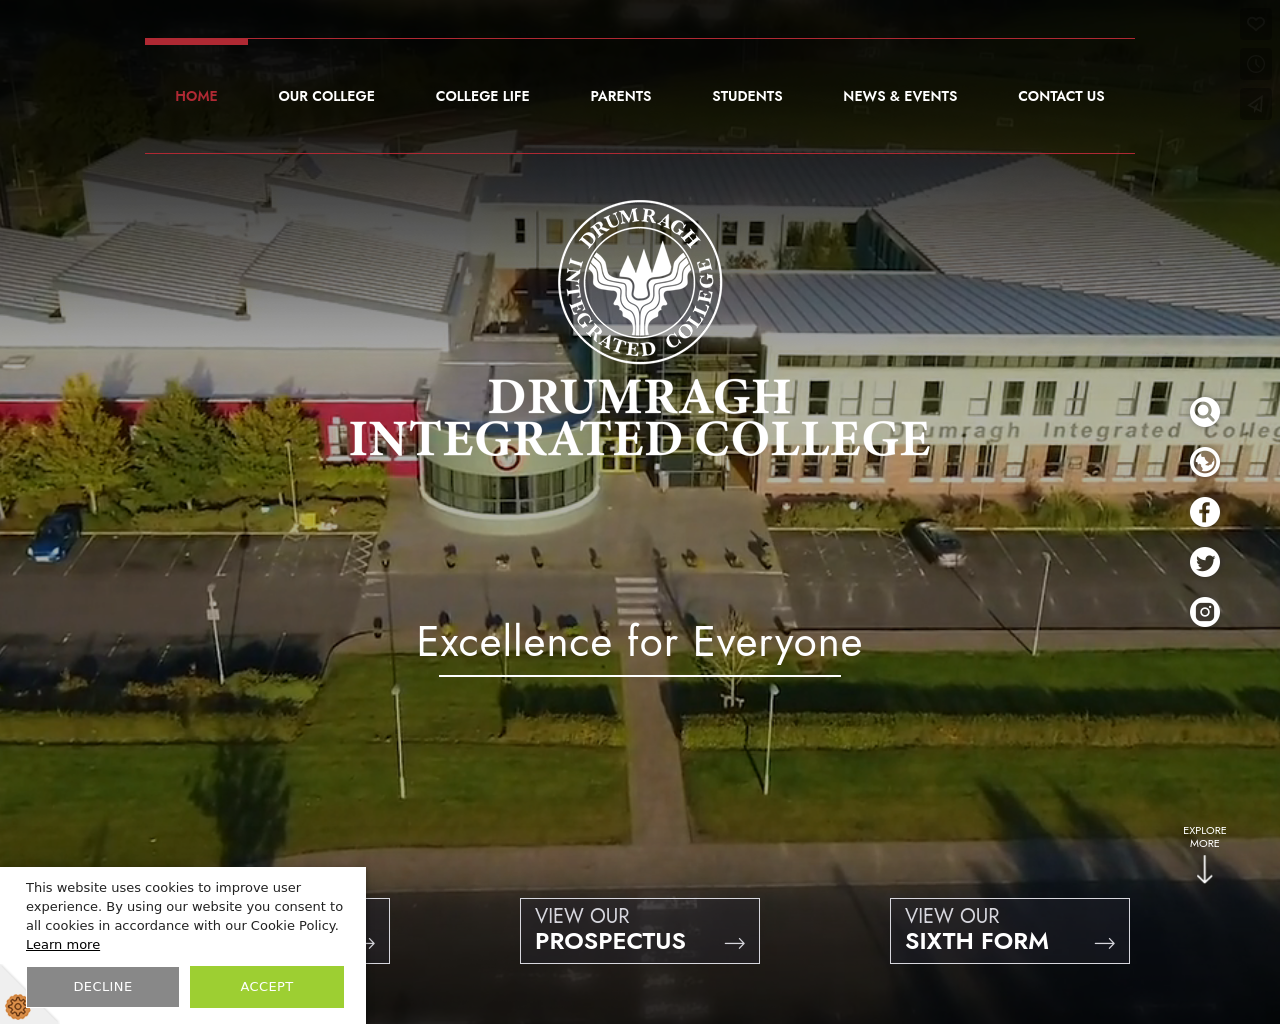 Drumragh Integrated College